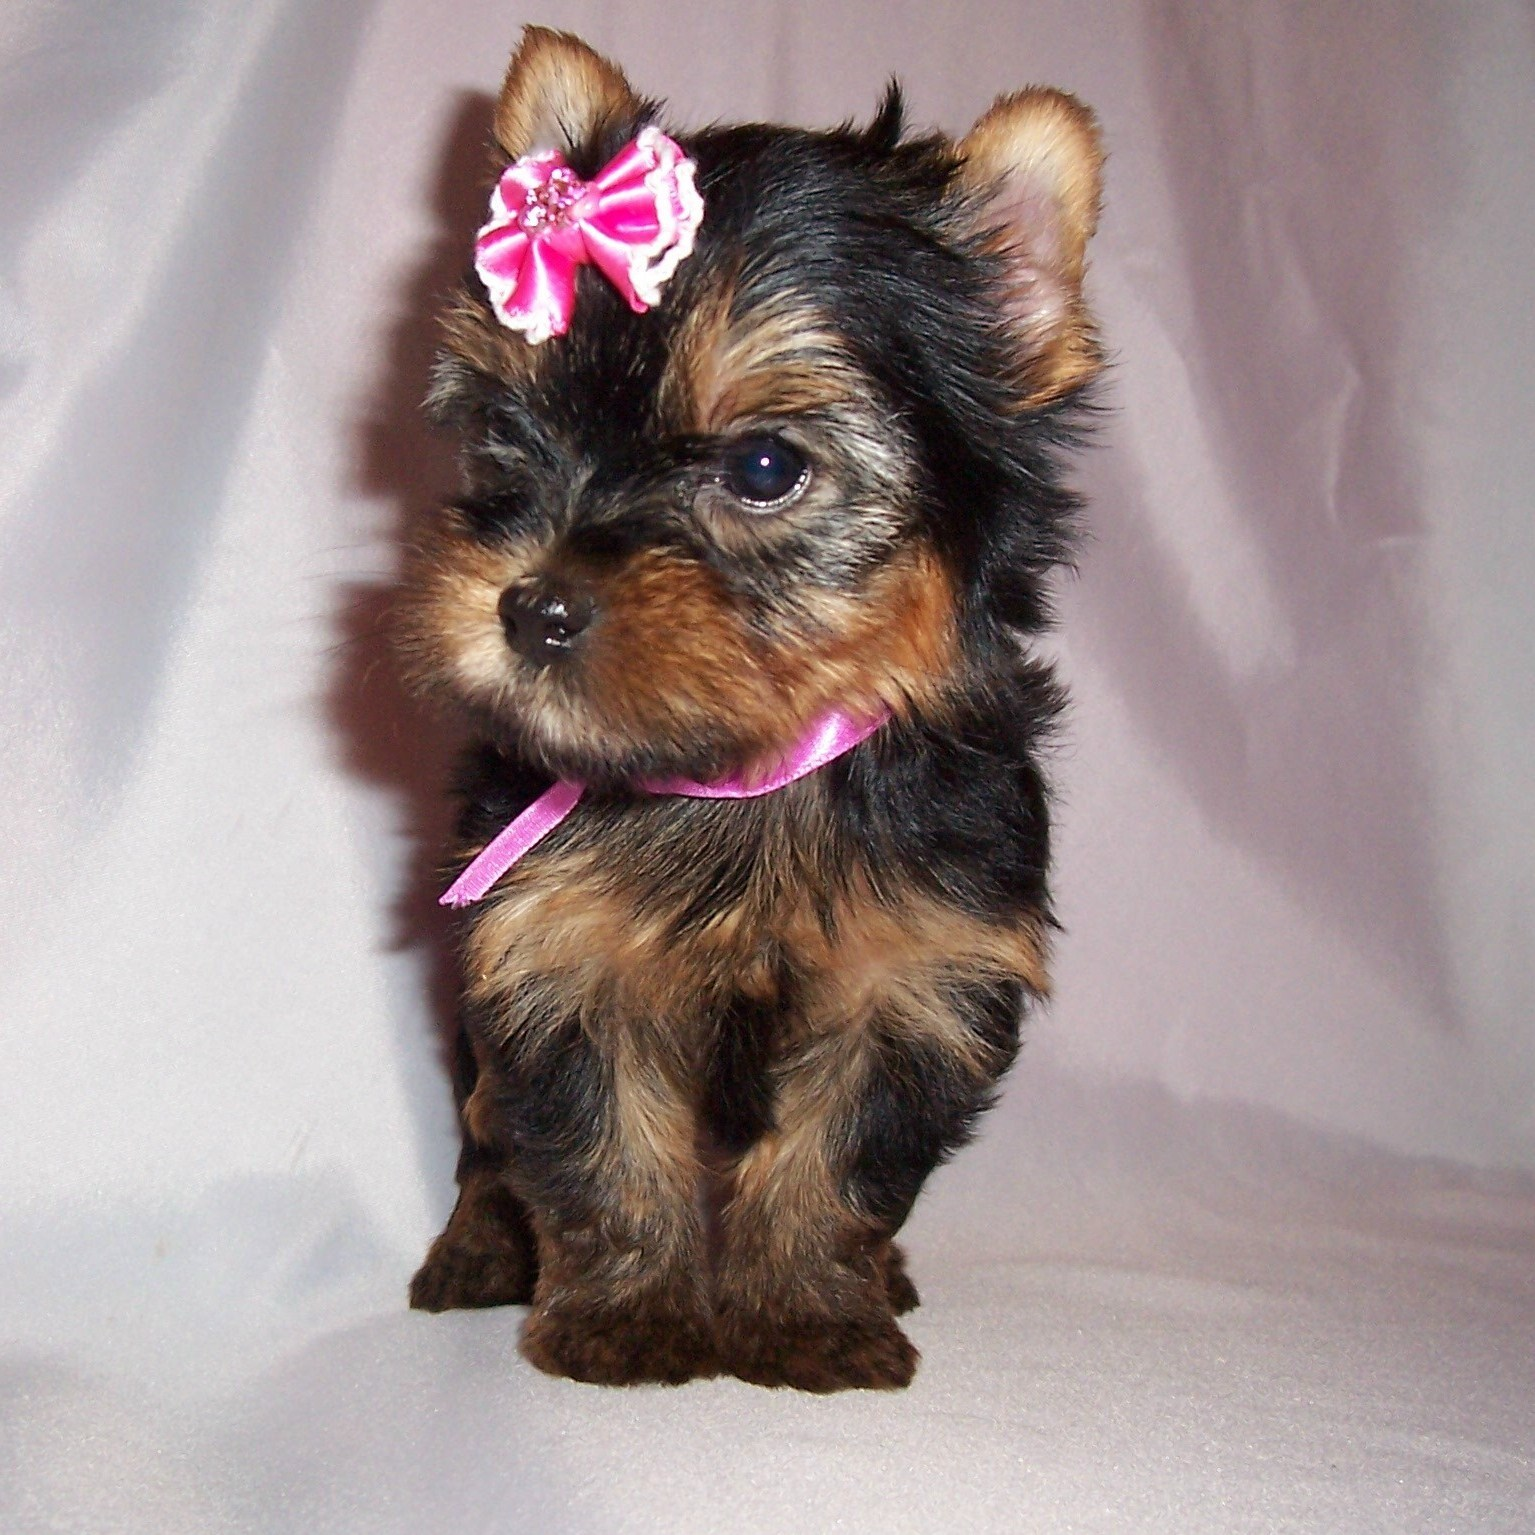 Rottweiler Mix German Shepherd Puppies Cute Puppy Dogs: Yorks...